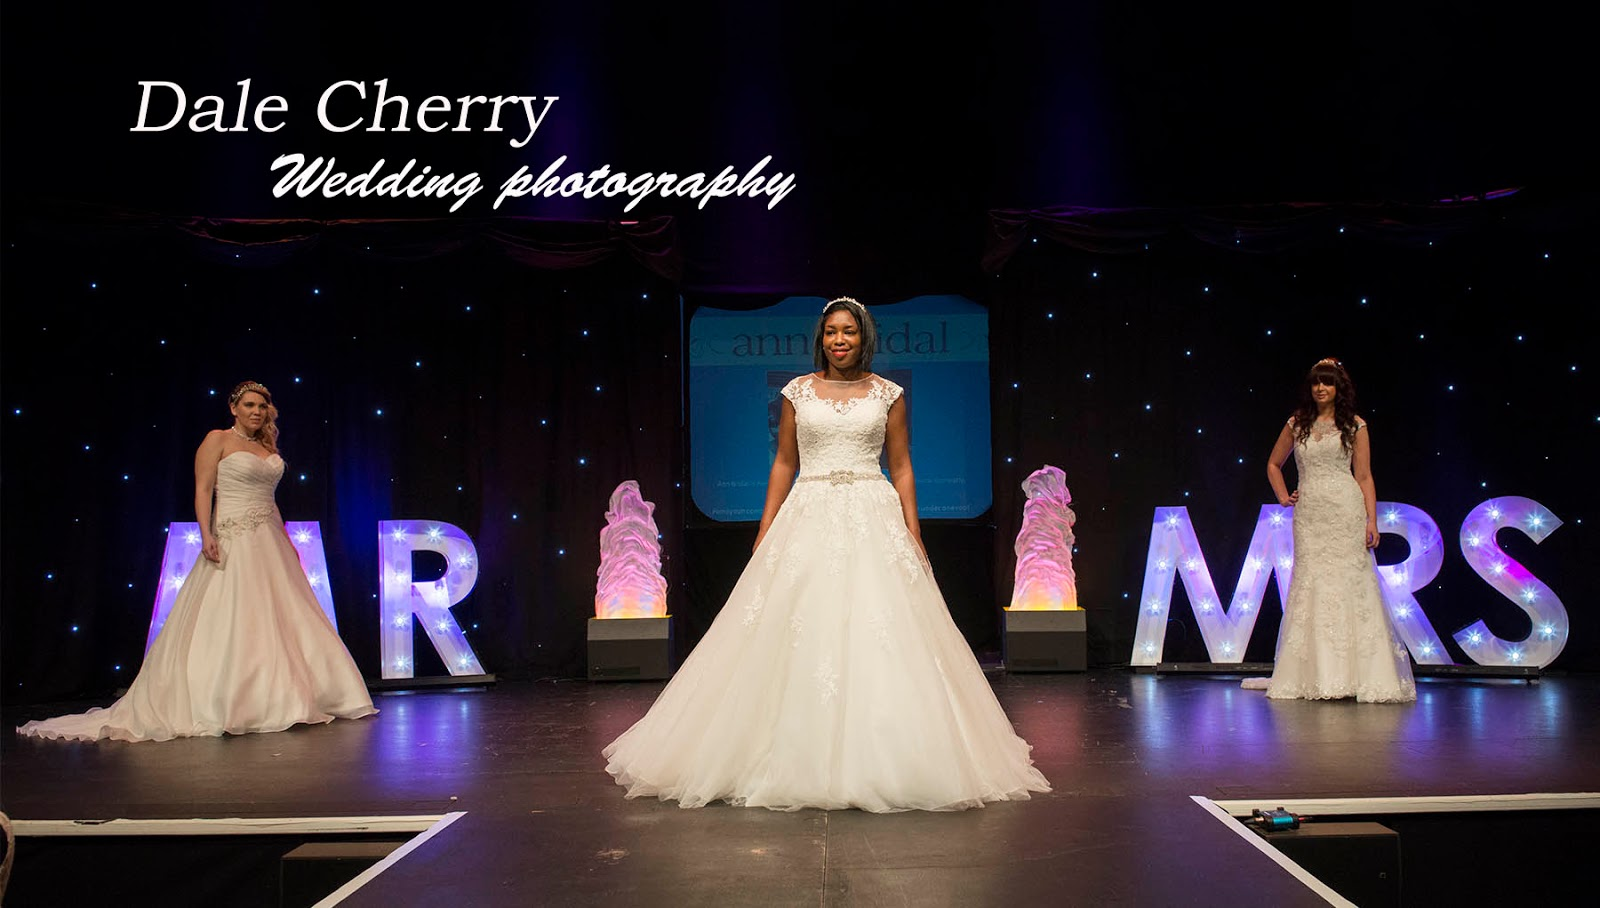 Dale Cherry Hertfordshire Wedding Photographer: Hertfordshire ...